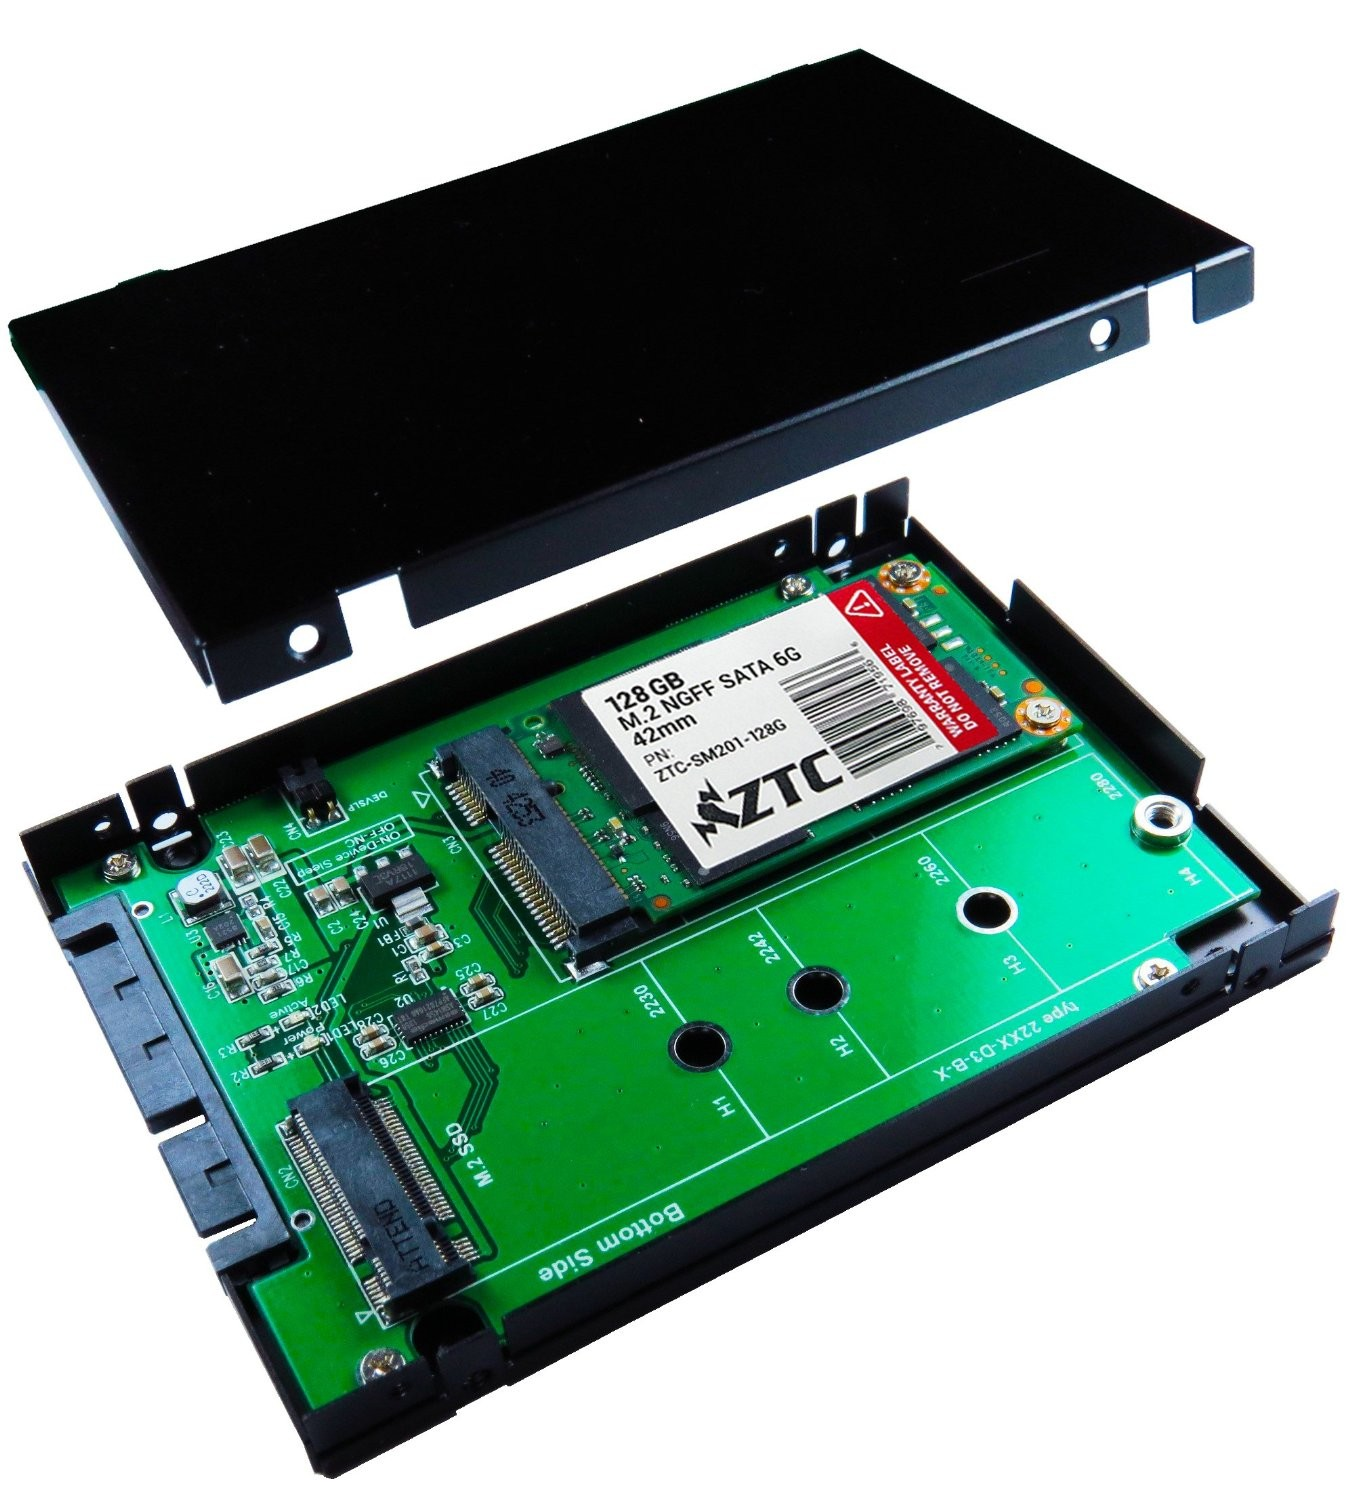 "ZTC 2-in-1 Sky 2.5"" Enclosure M.2 (NGFF) or mSATA SSD to SATA III Board Adapter. Multi Size Fit with High Speed 6.0GB/s. Model ZTC-EN005"